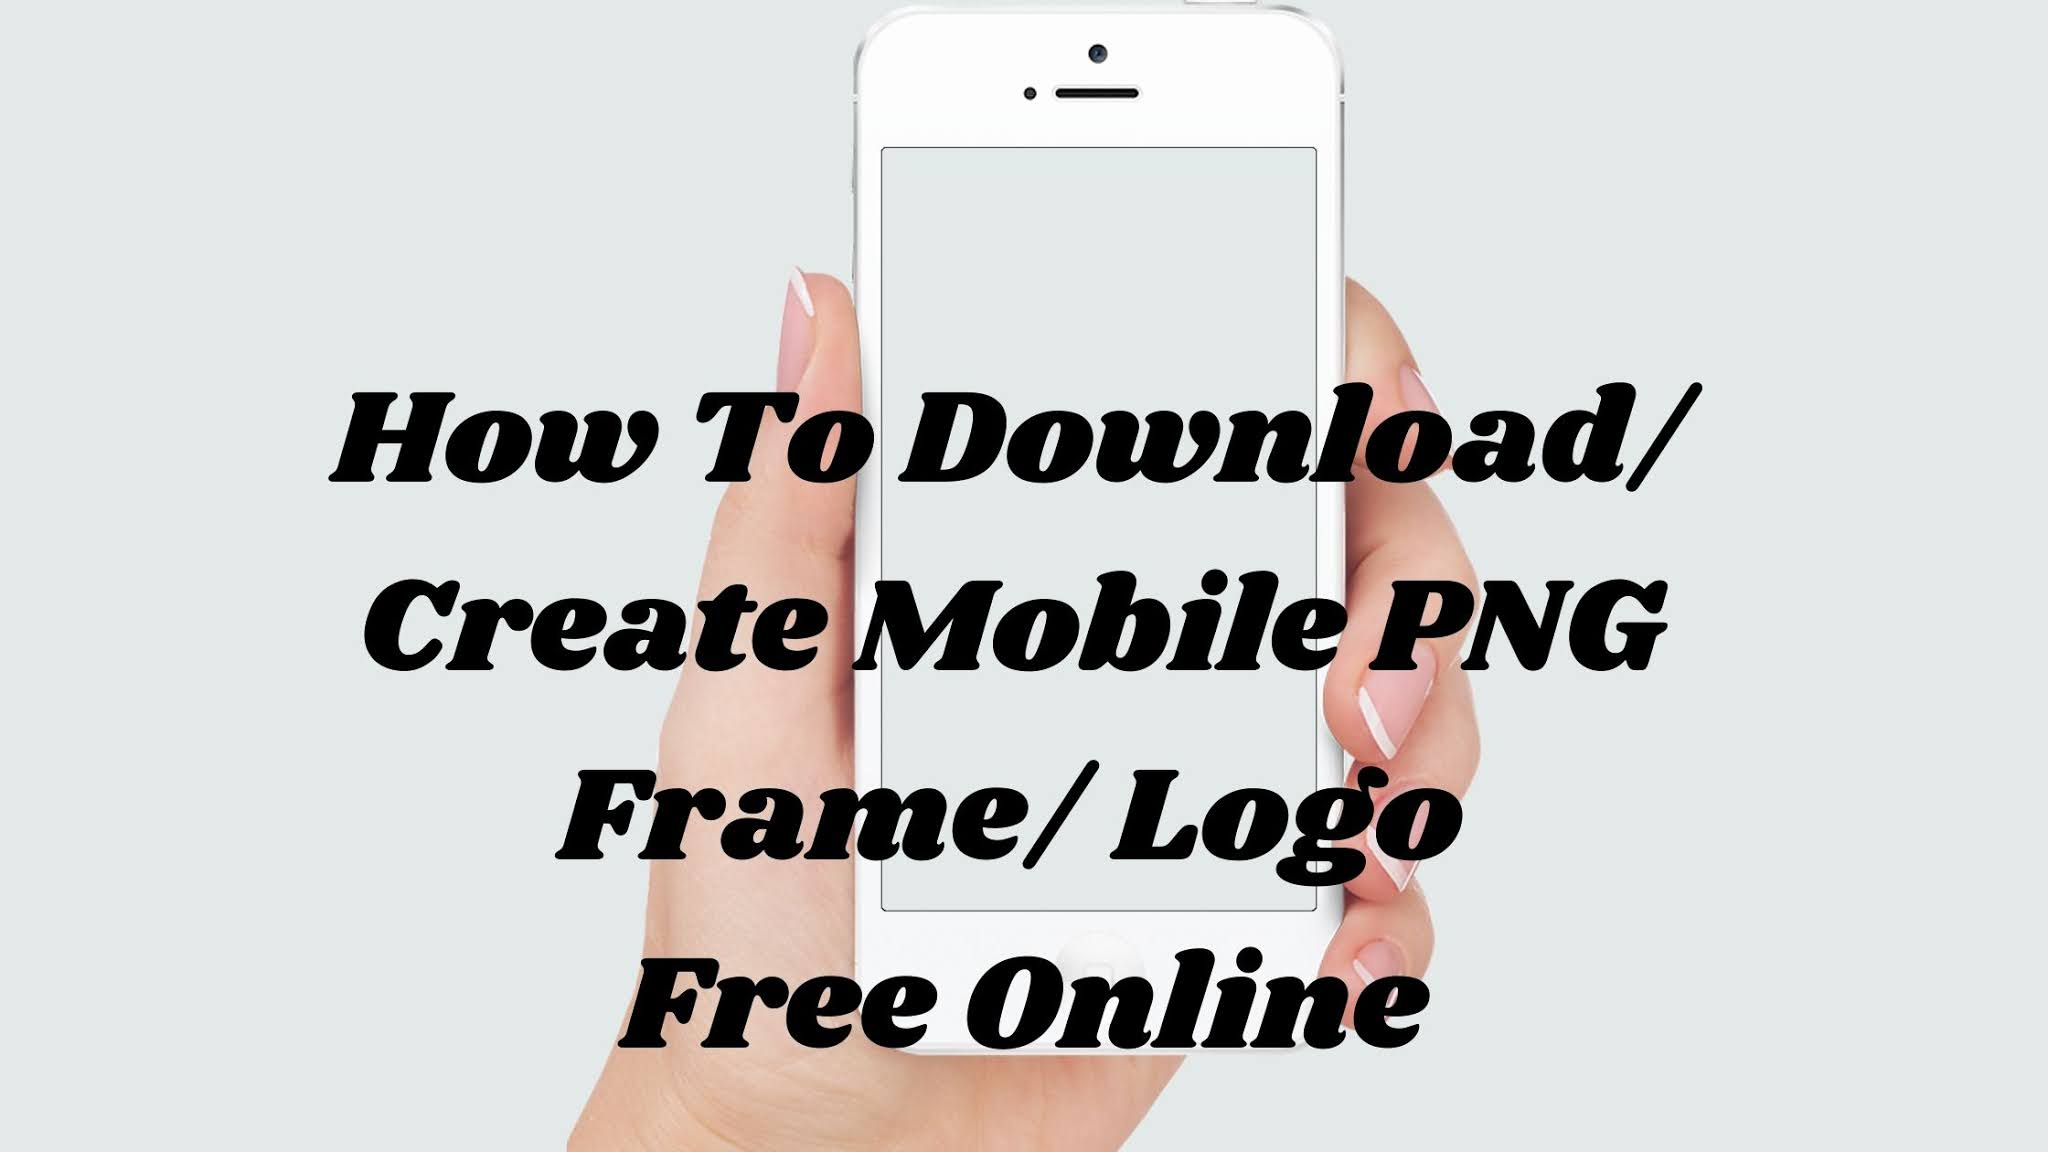 How To Download/ Create Mobile PNG Frame/ Logo Free Online